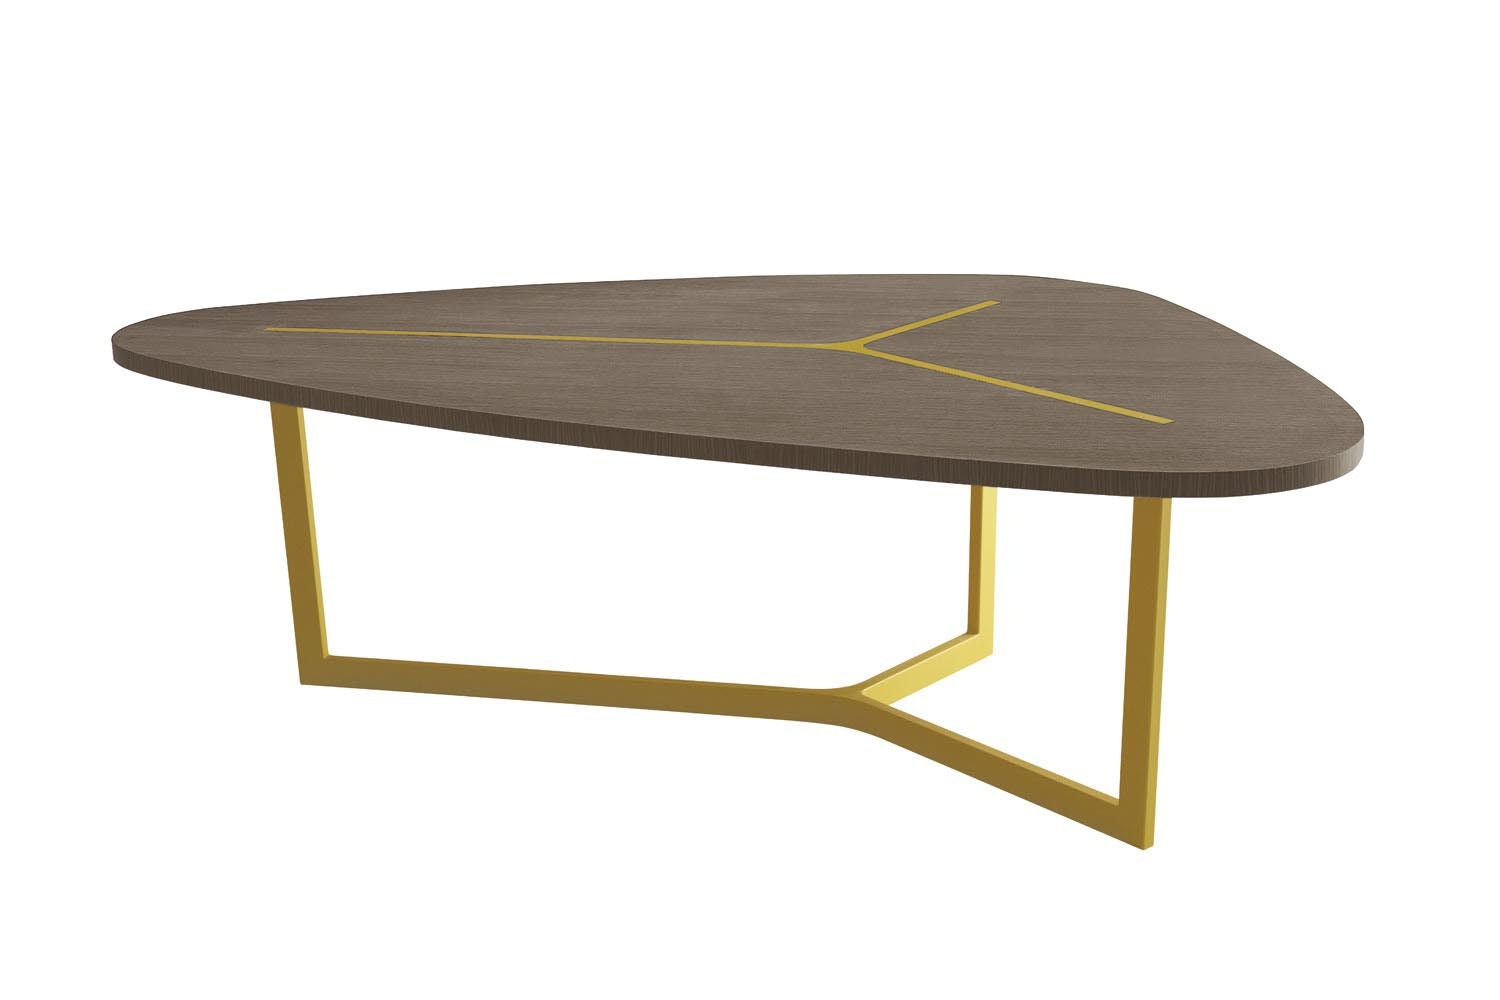 Seven Table by Jean-Marie Massaud for B&B Italia